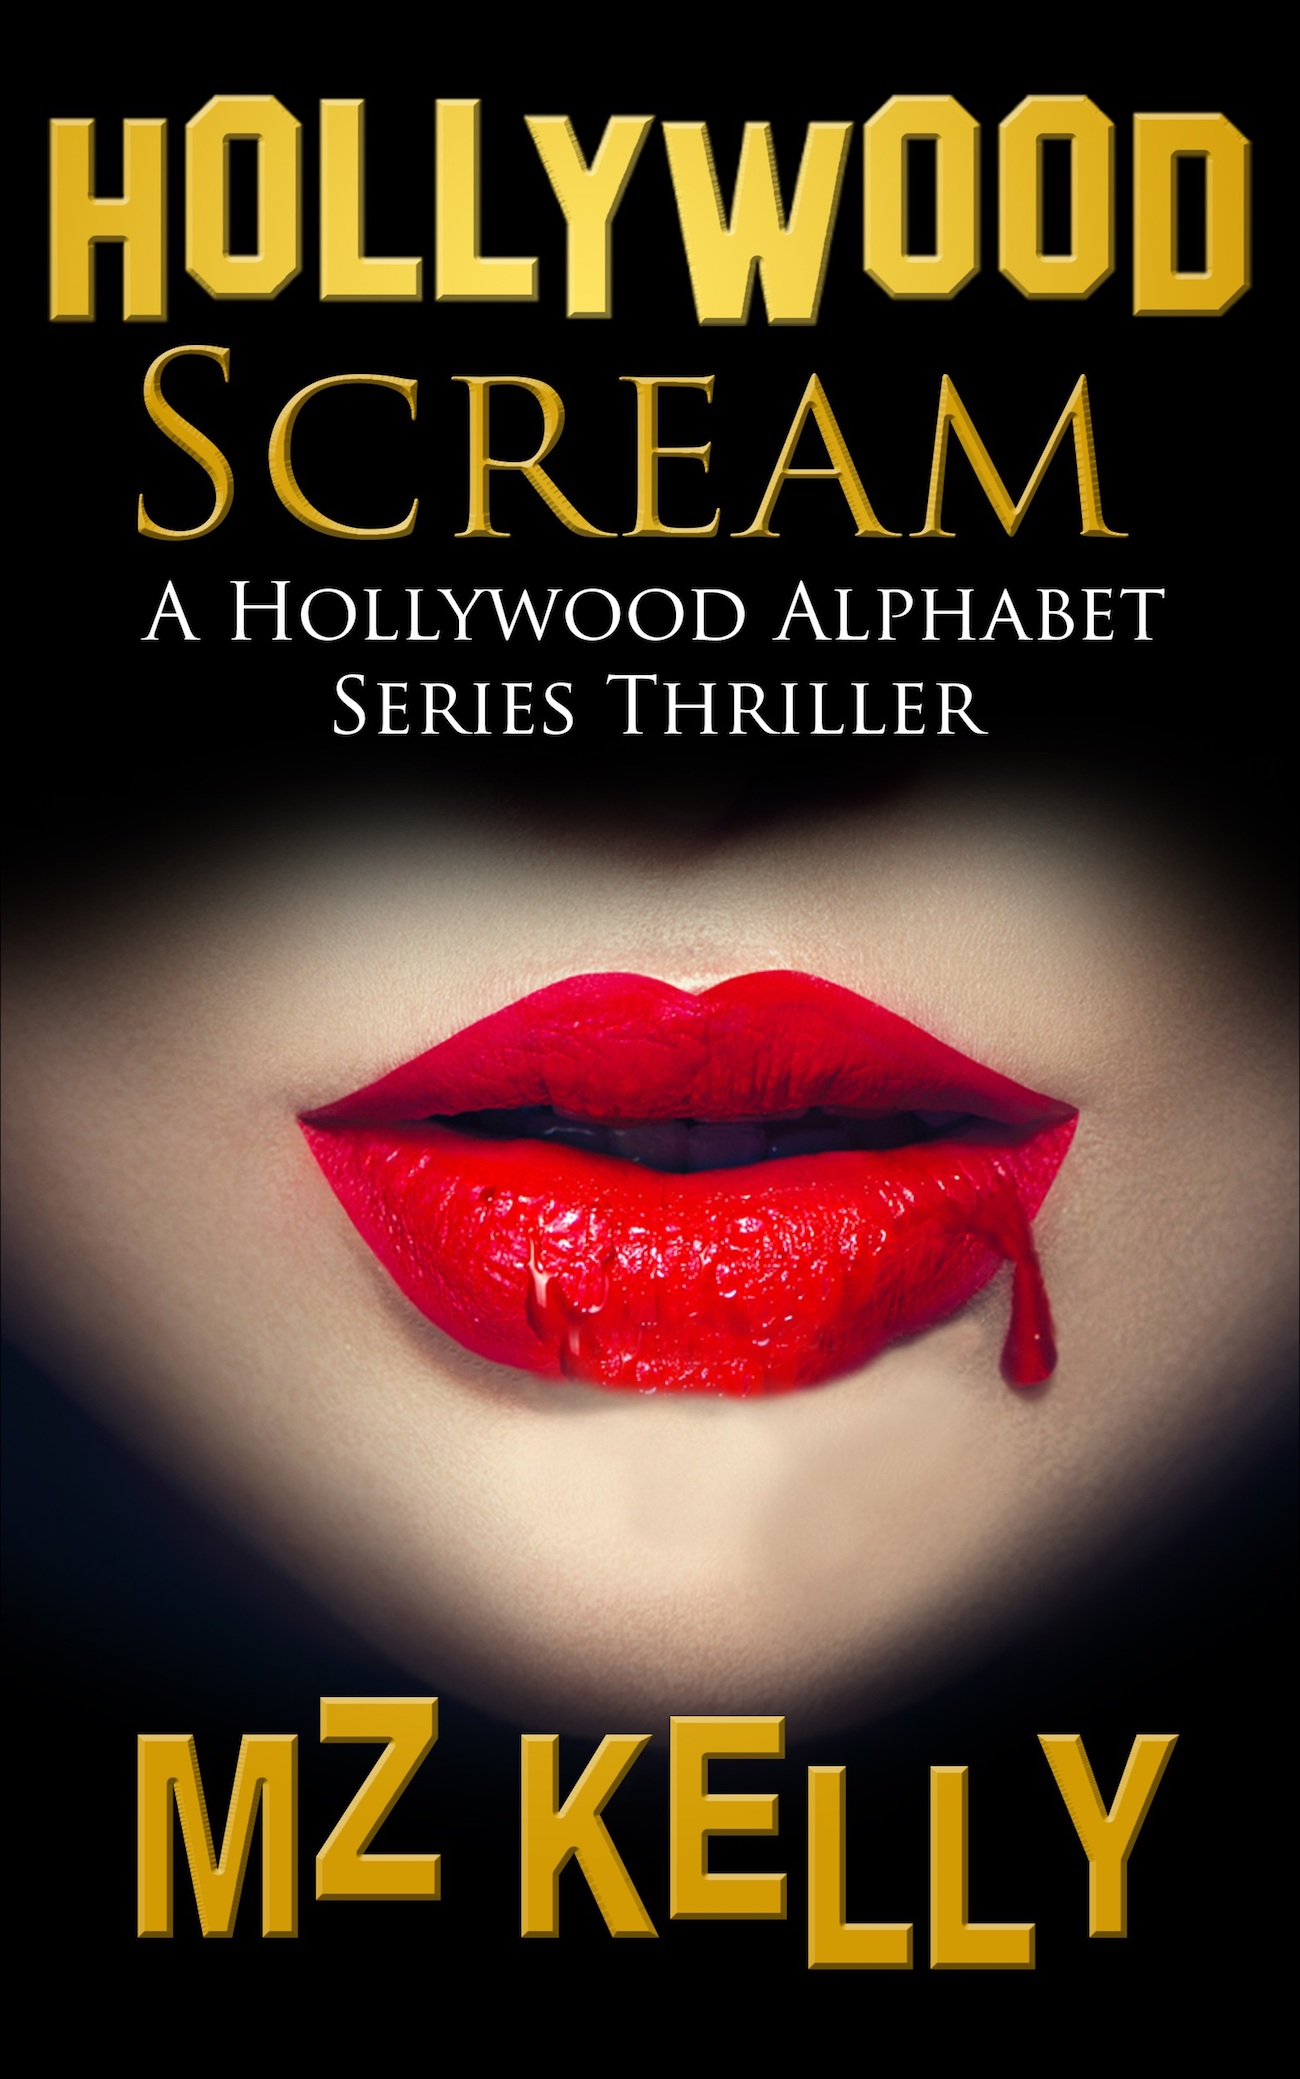 Hollywood Scream